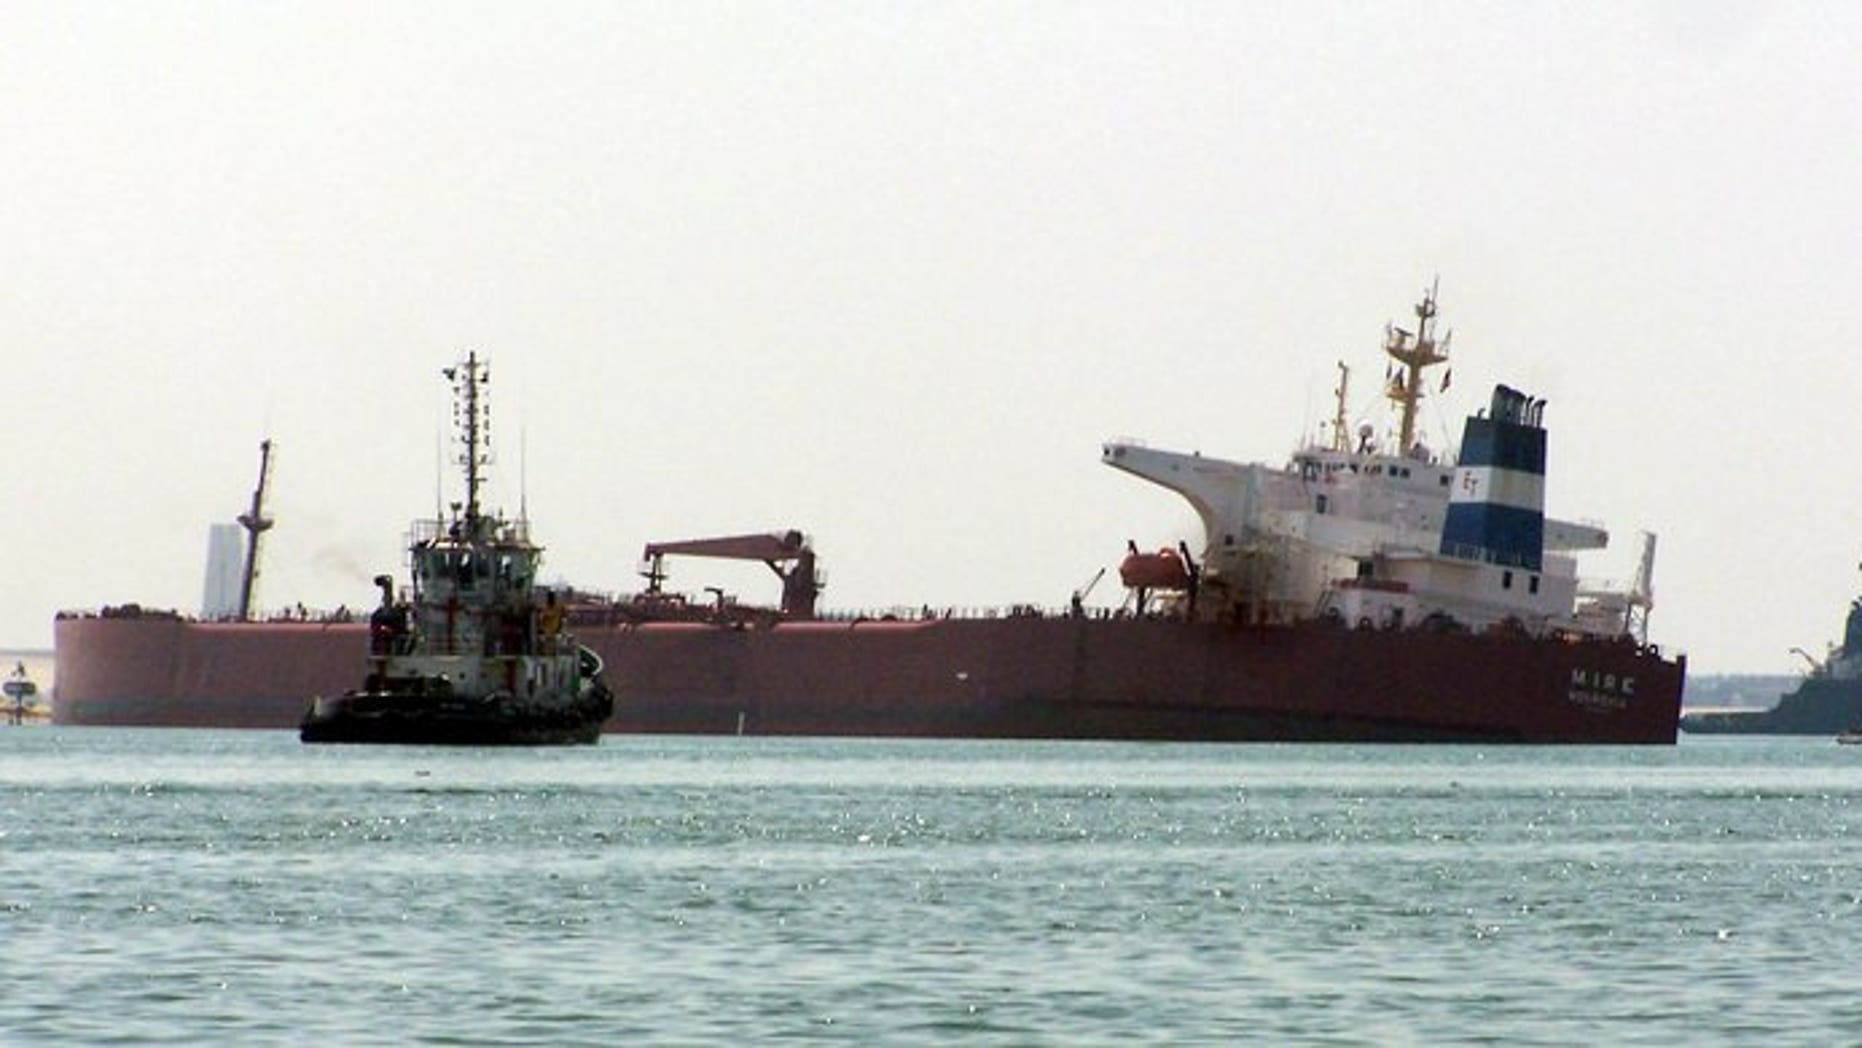 A tanker is seen stuck in the Suez canal on March 28, 2010 near Ismailia city, 120 kms north east of Cairo. Brent oil prices hit a four-month high on concerns escalating violence in Egypt will disrupt supplies from the Middle East, analysts said.